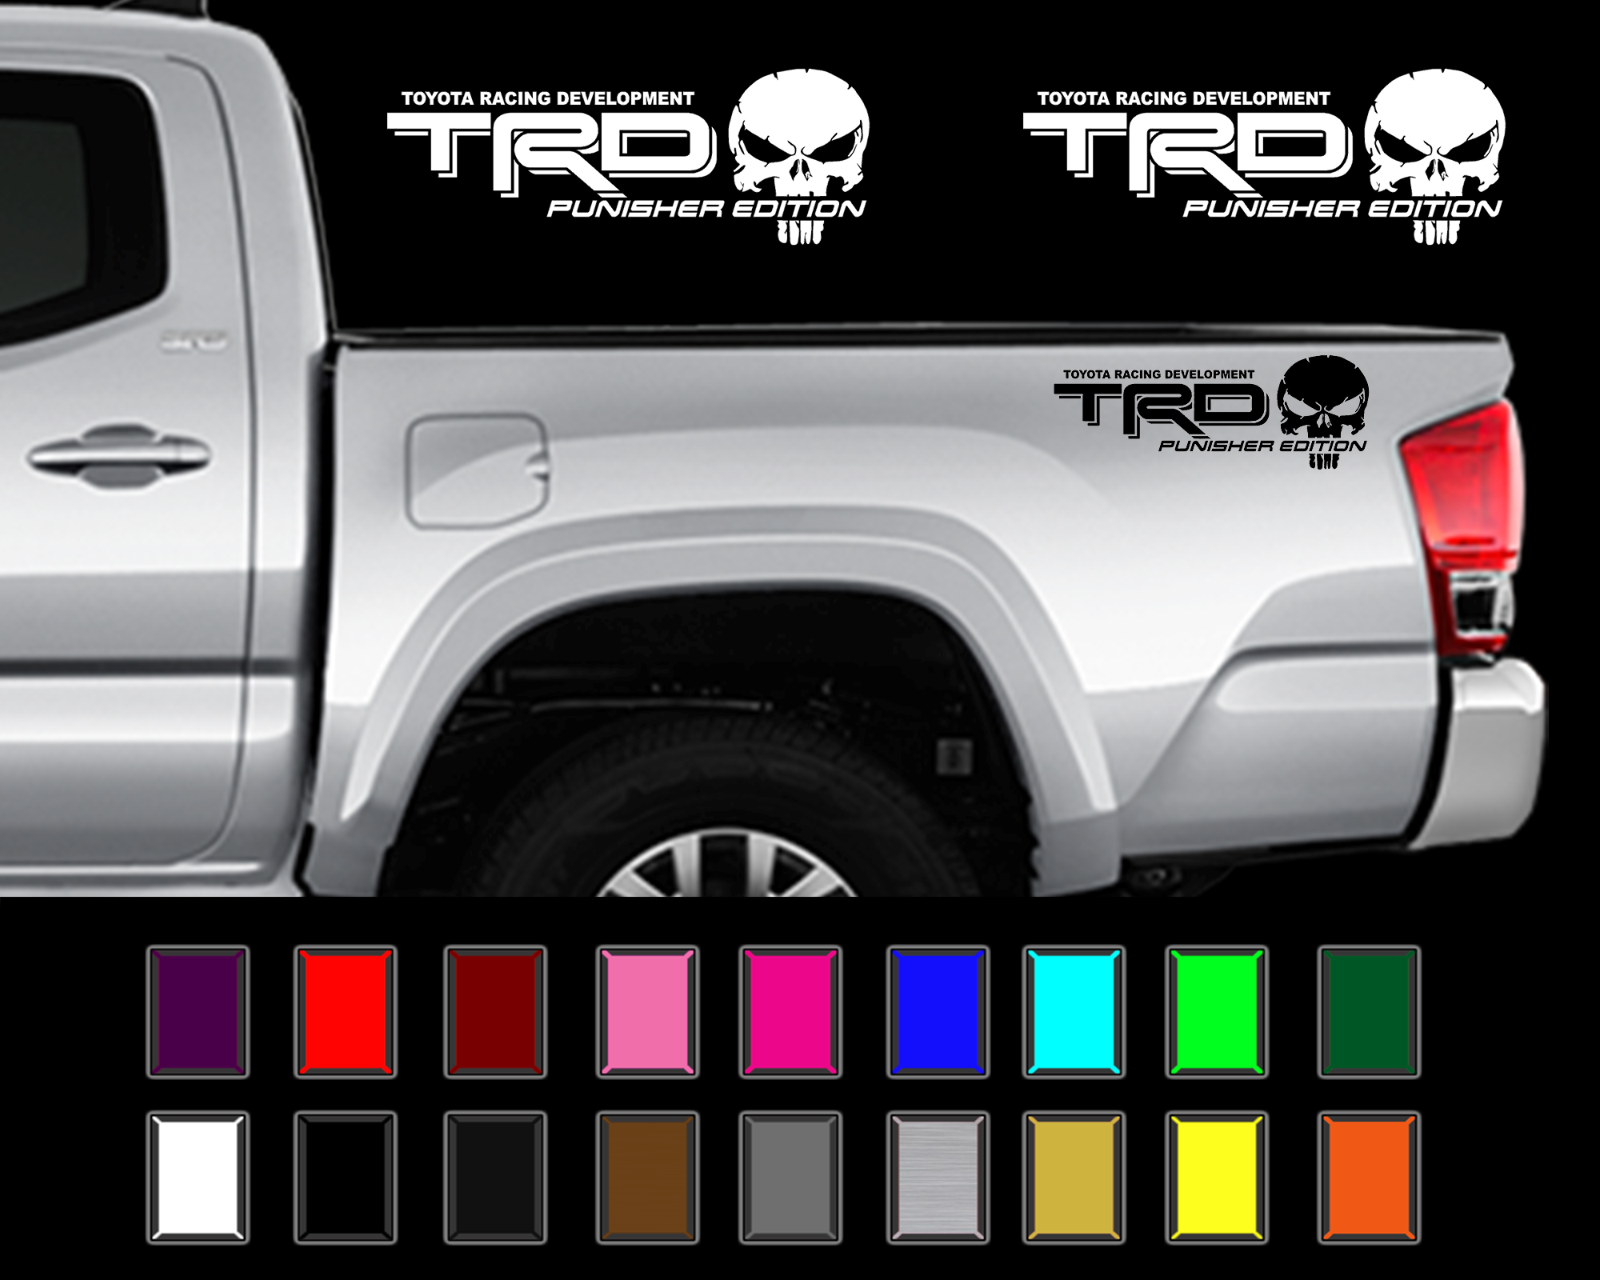 TRD PUNISHER EDITION PAIR Decals Toyota Tacoma Tundra Truck Vinyl Stickers